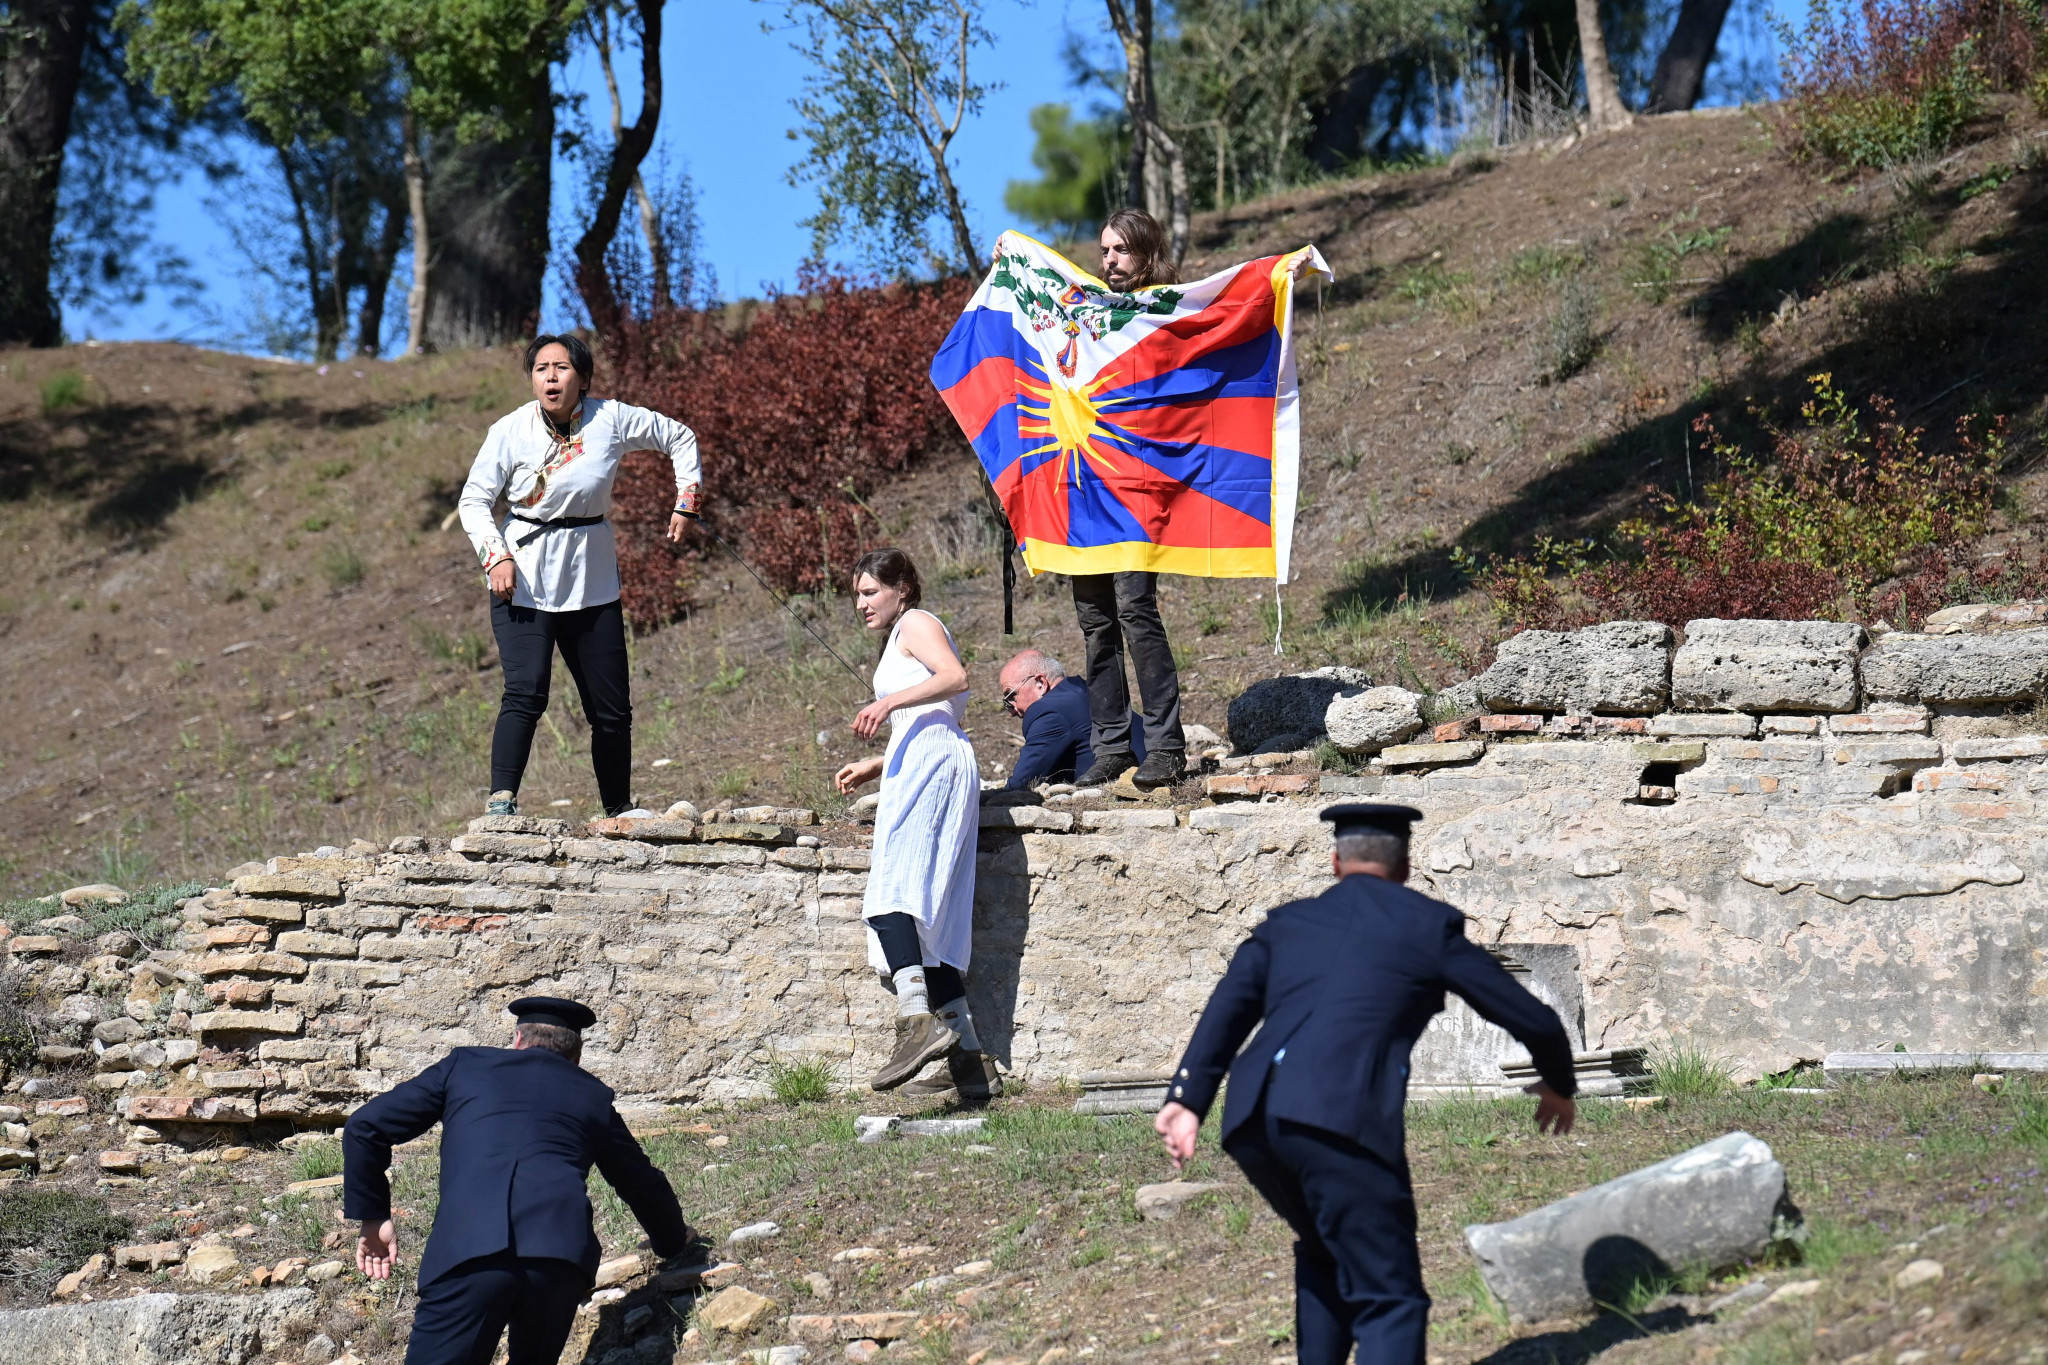 Beijing 2022 Flame Lighting Ceremony overshadowed by human rights protests in Ancient Olympia